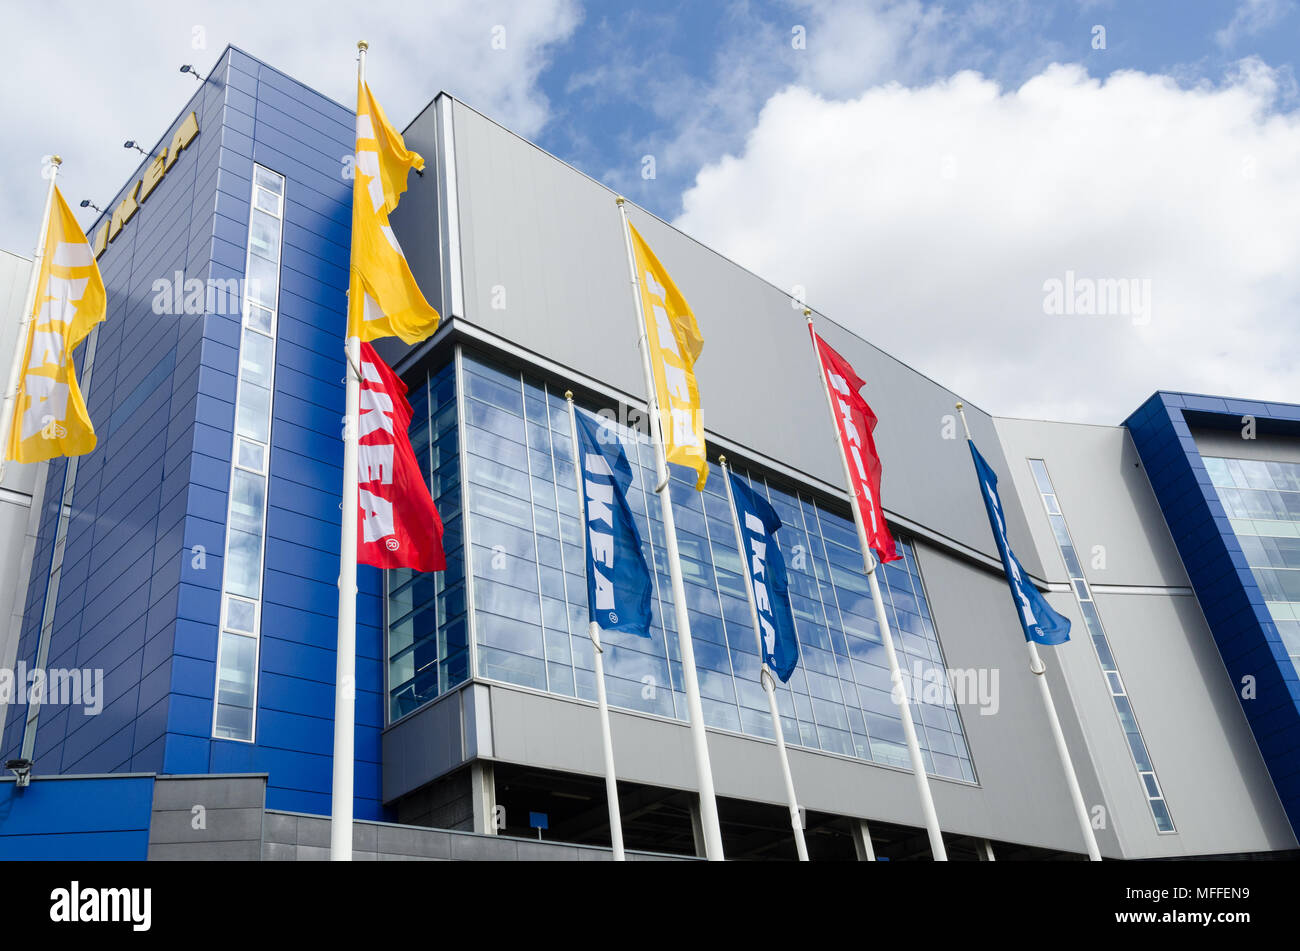 Ikea Home Furnishings Stock Photos & Ikea Home Furnishings Stock ...